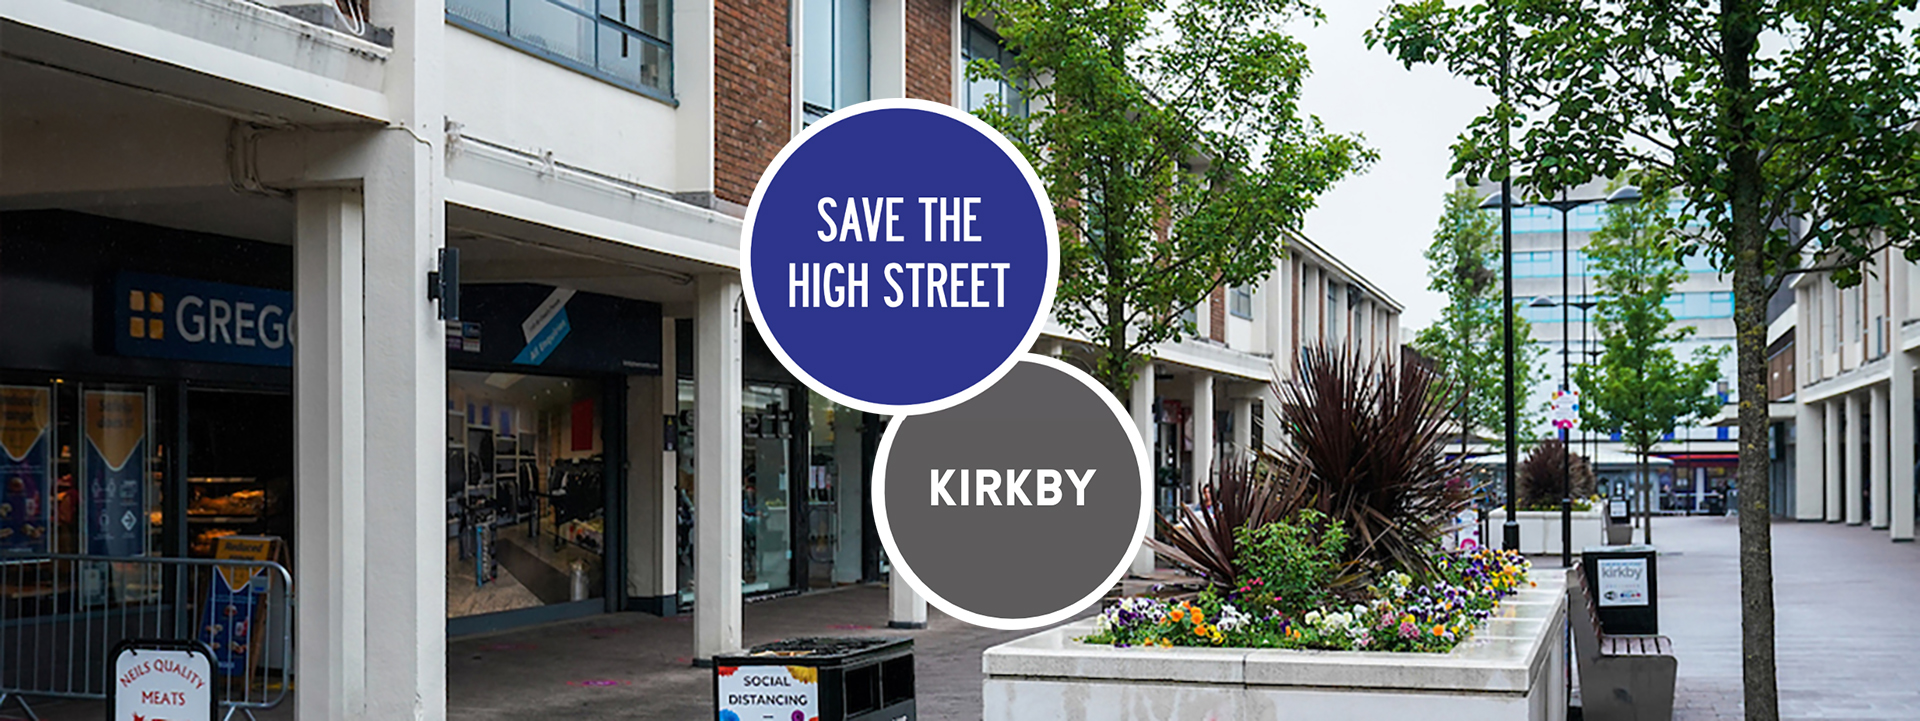 Saturday 4 July 2020. Town Centres Kirkby and Prescot